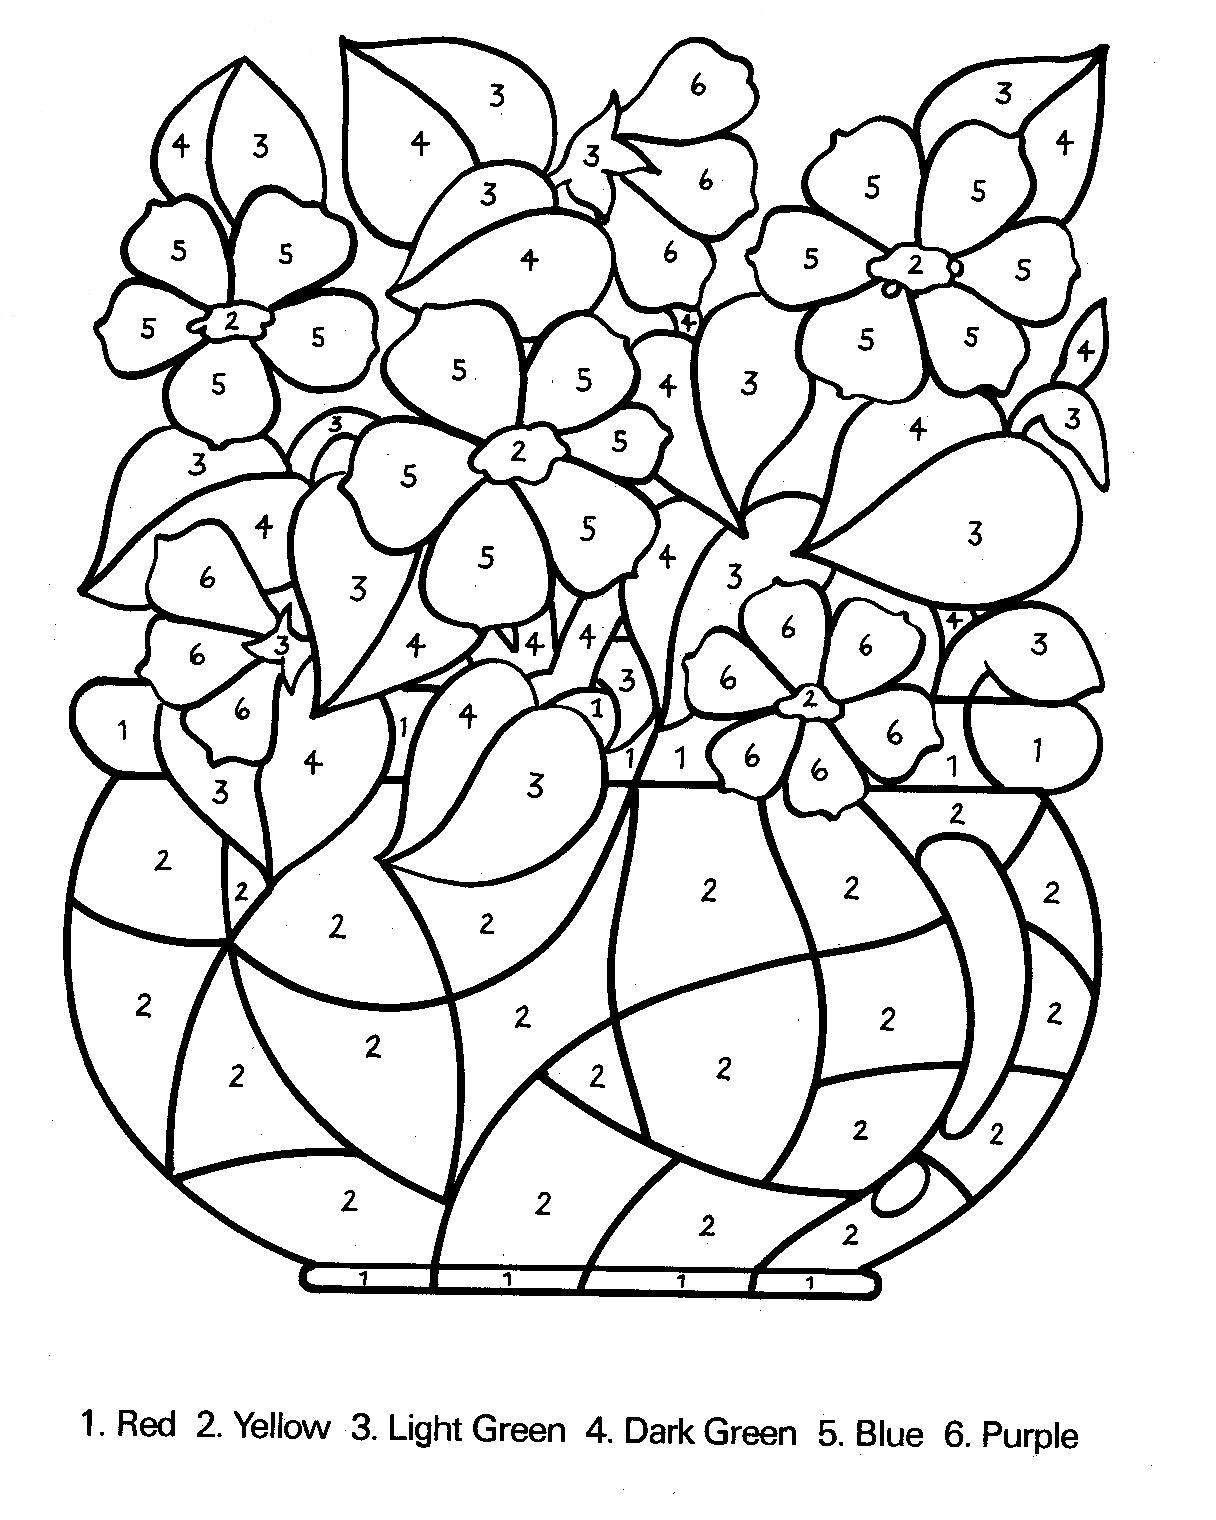 number flowers coloring sheets digg stumbleupon del icio us